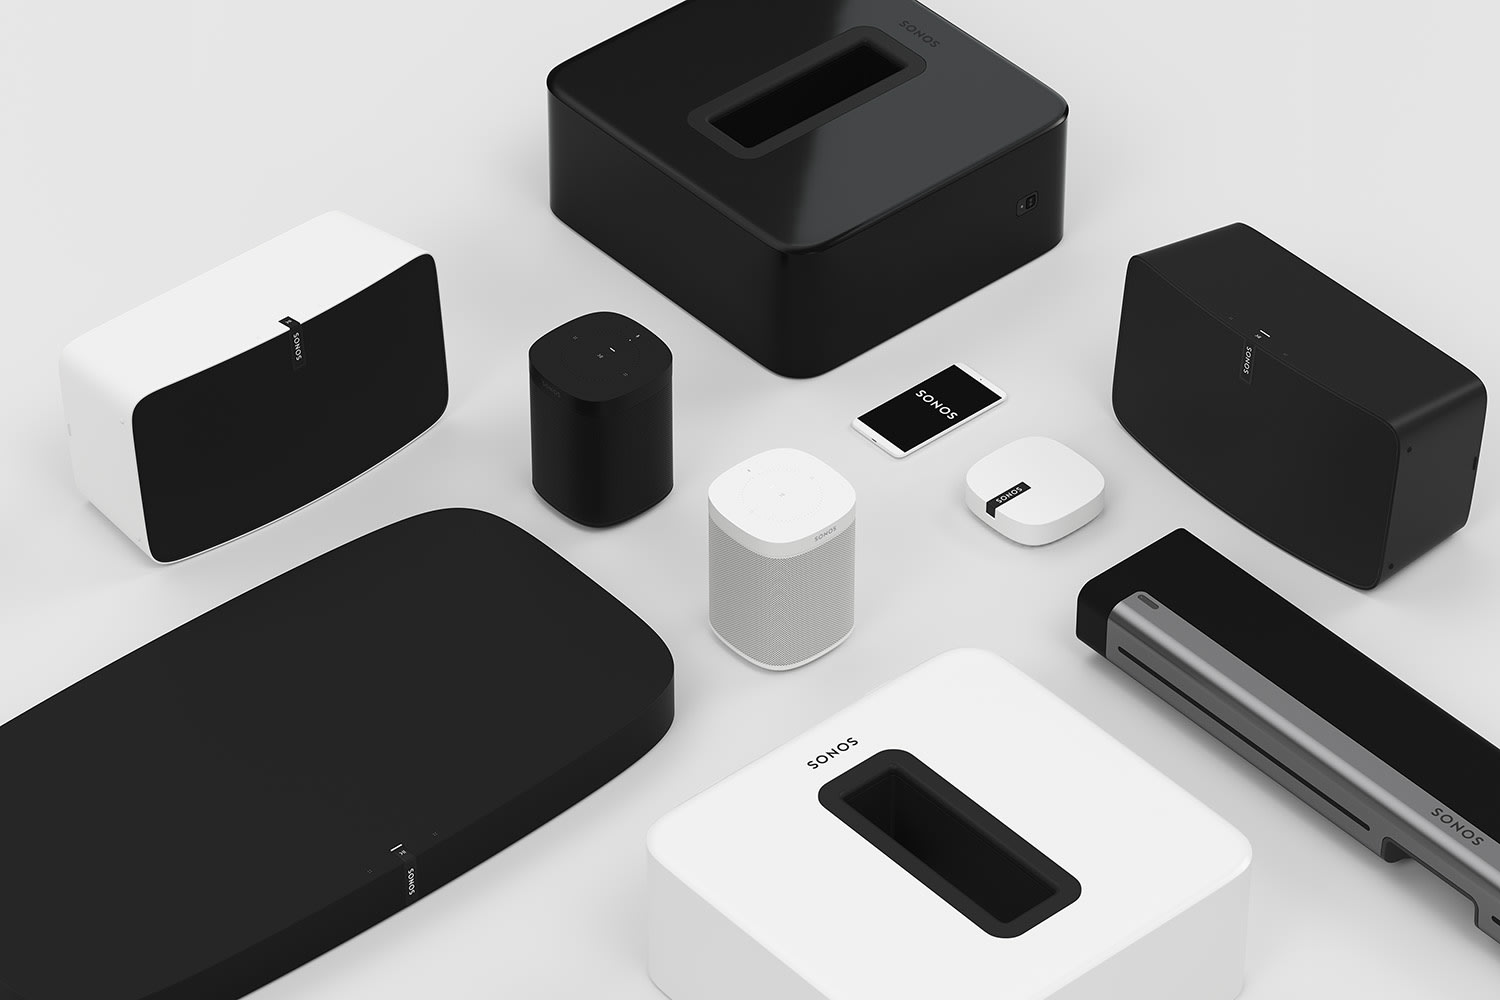 sonos ifttt recipes let your smart home control your music. Black Bedroom Furniture Sets. Home Design Ideas